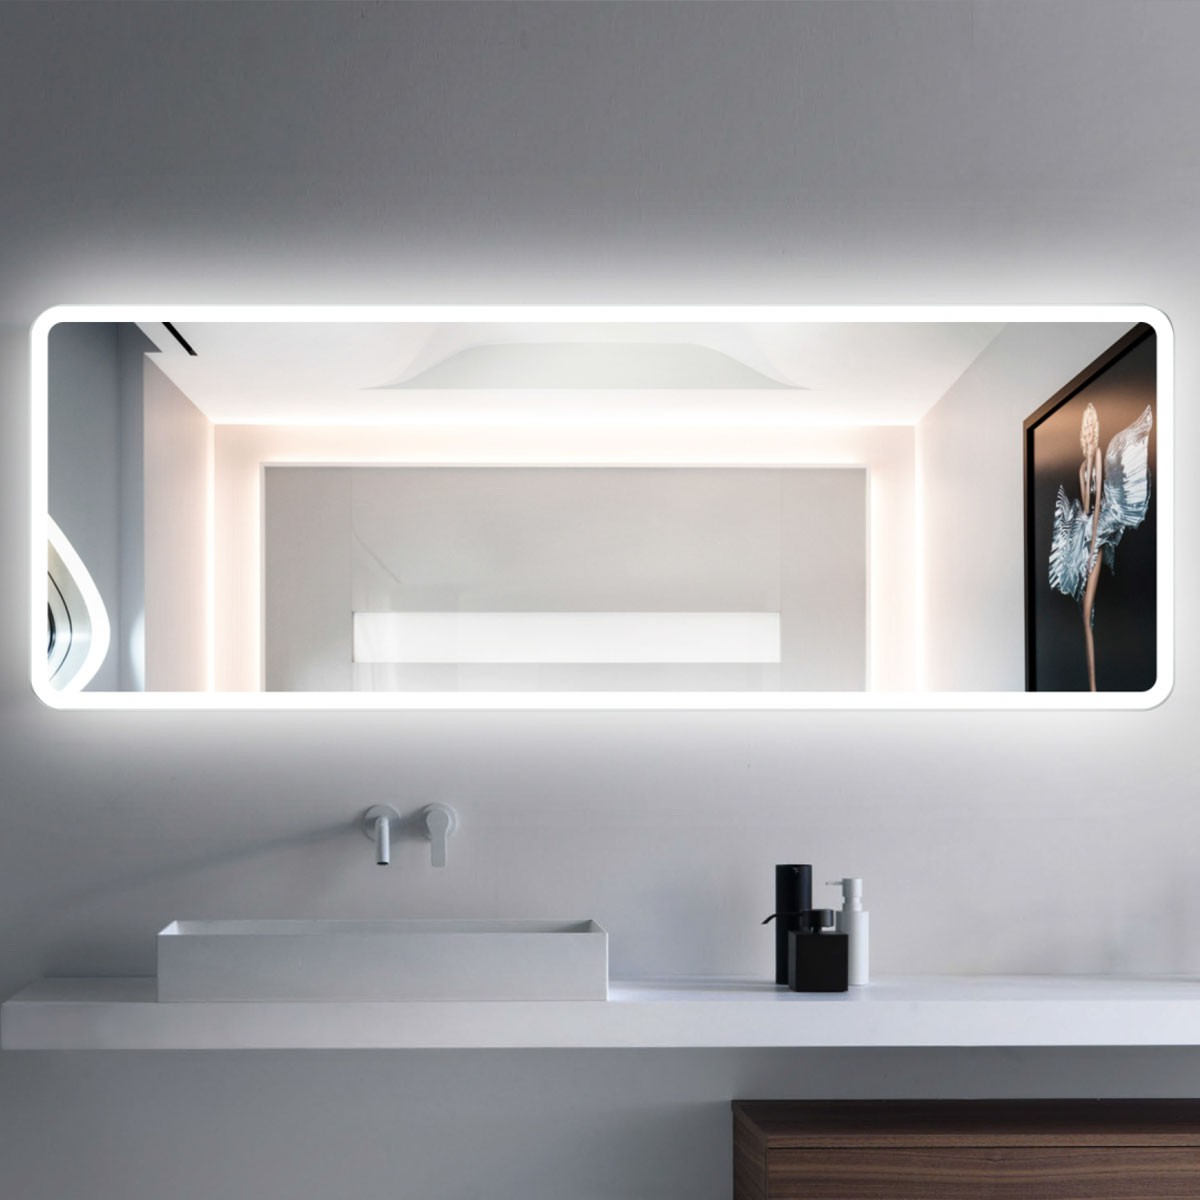 Super 55 X 20 In Horizontal Led Bathroom Mirror With Infrared Sensor Dk Ck201 Download Free Architecture Designs Sospemadebymaigaardcom